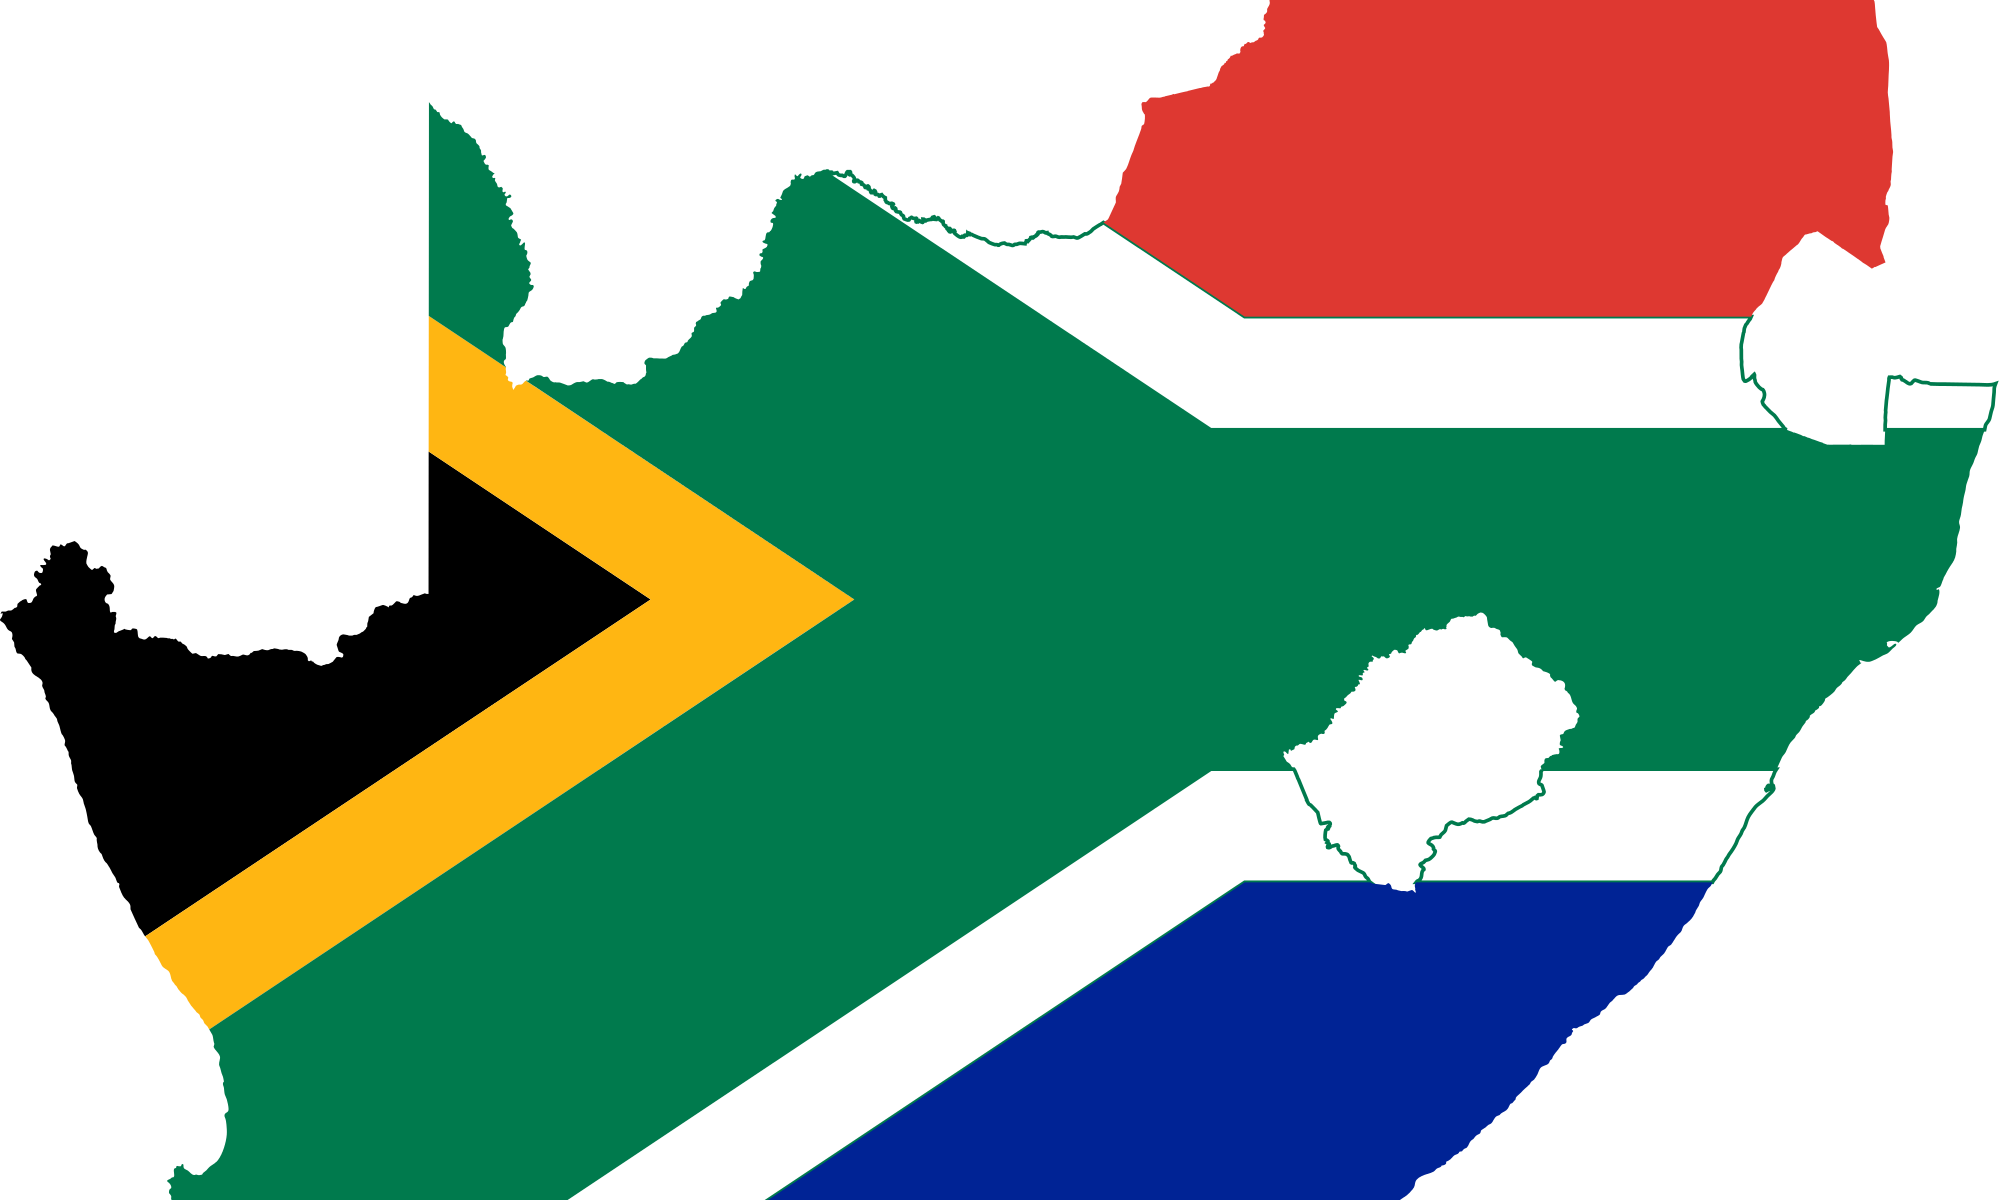 Grilling clipart braai south african. The most food and